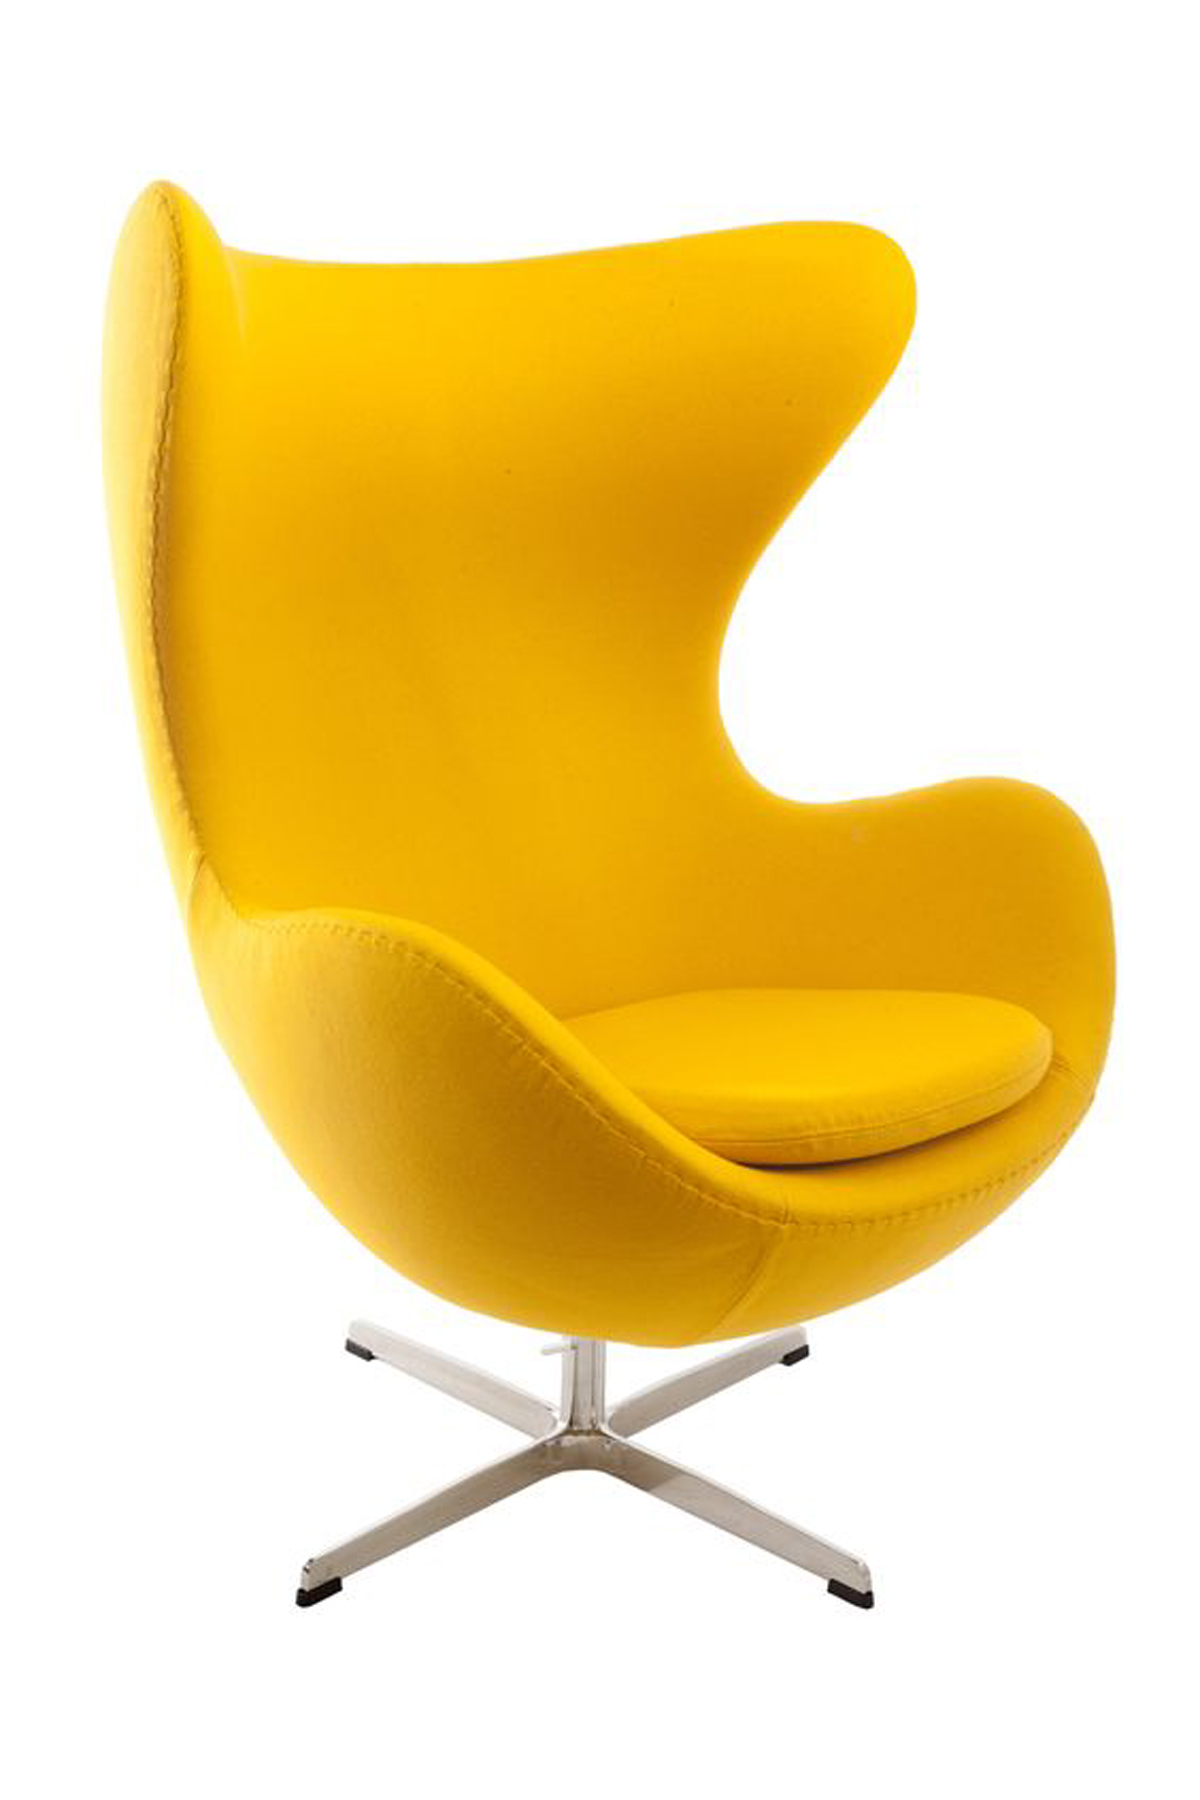 Yellow Egg Chair Egg Lounge Chair Cre